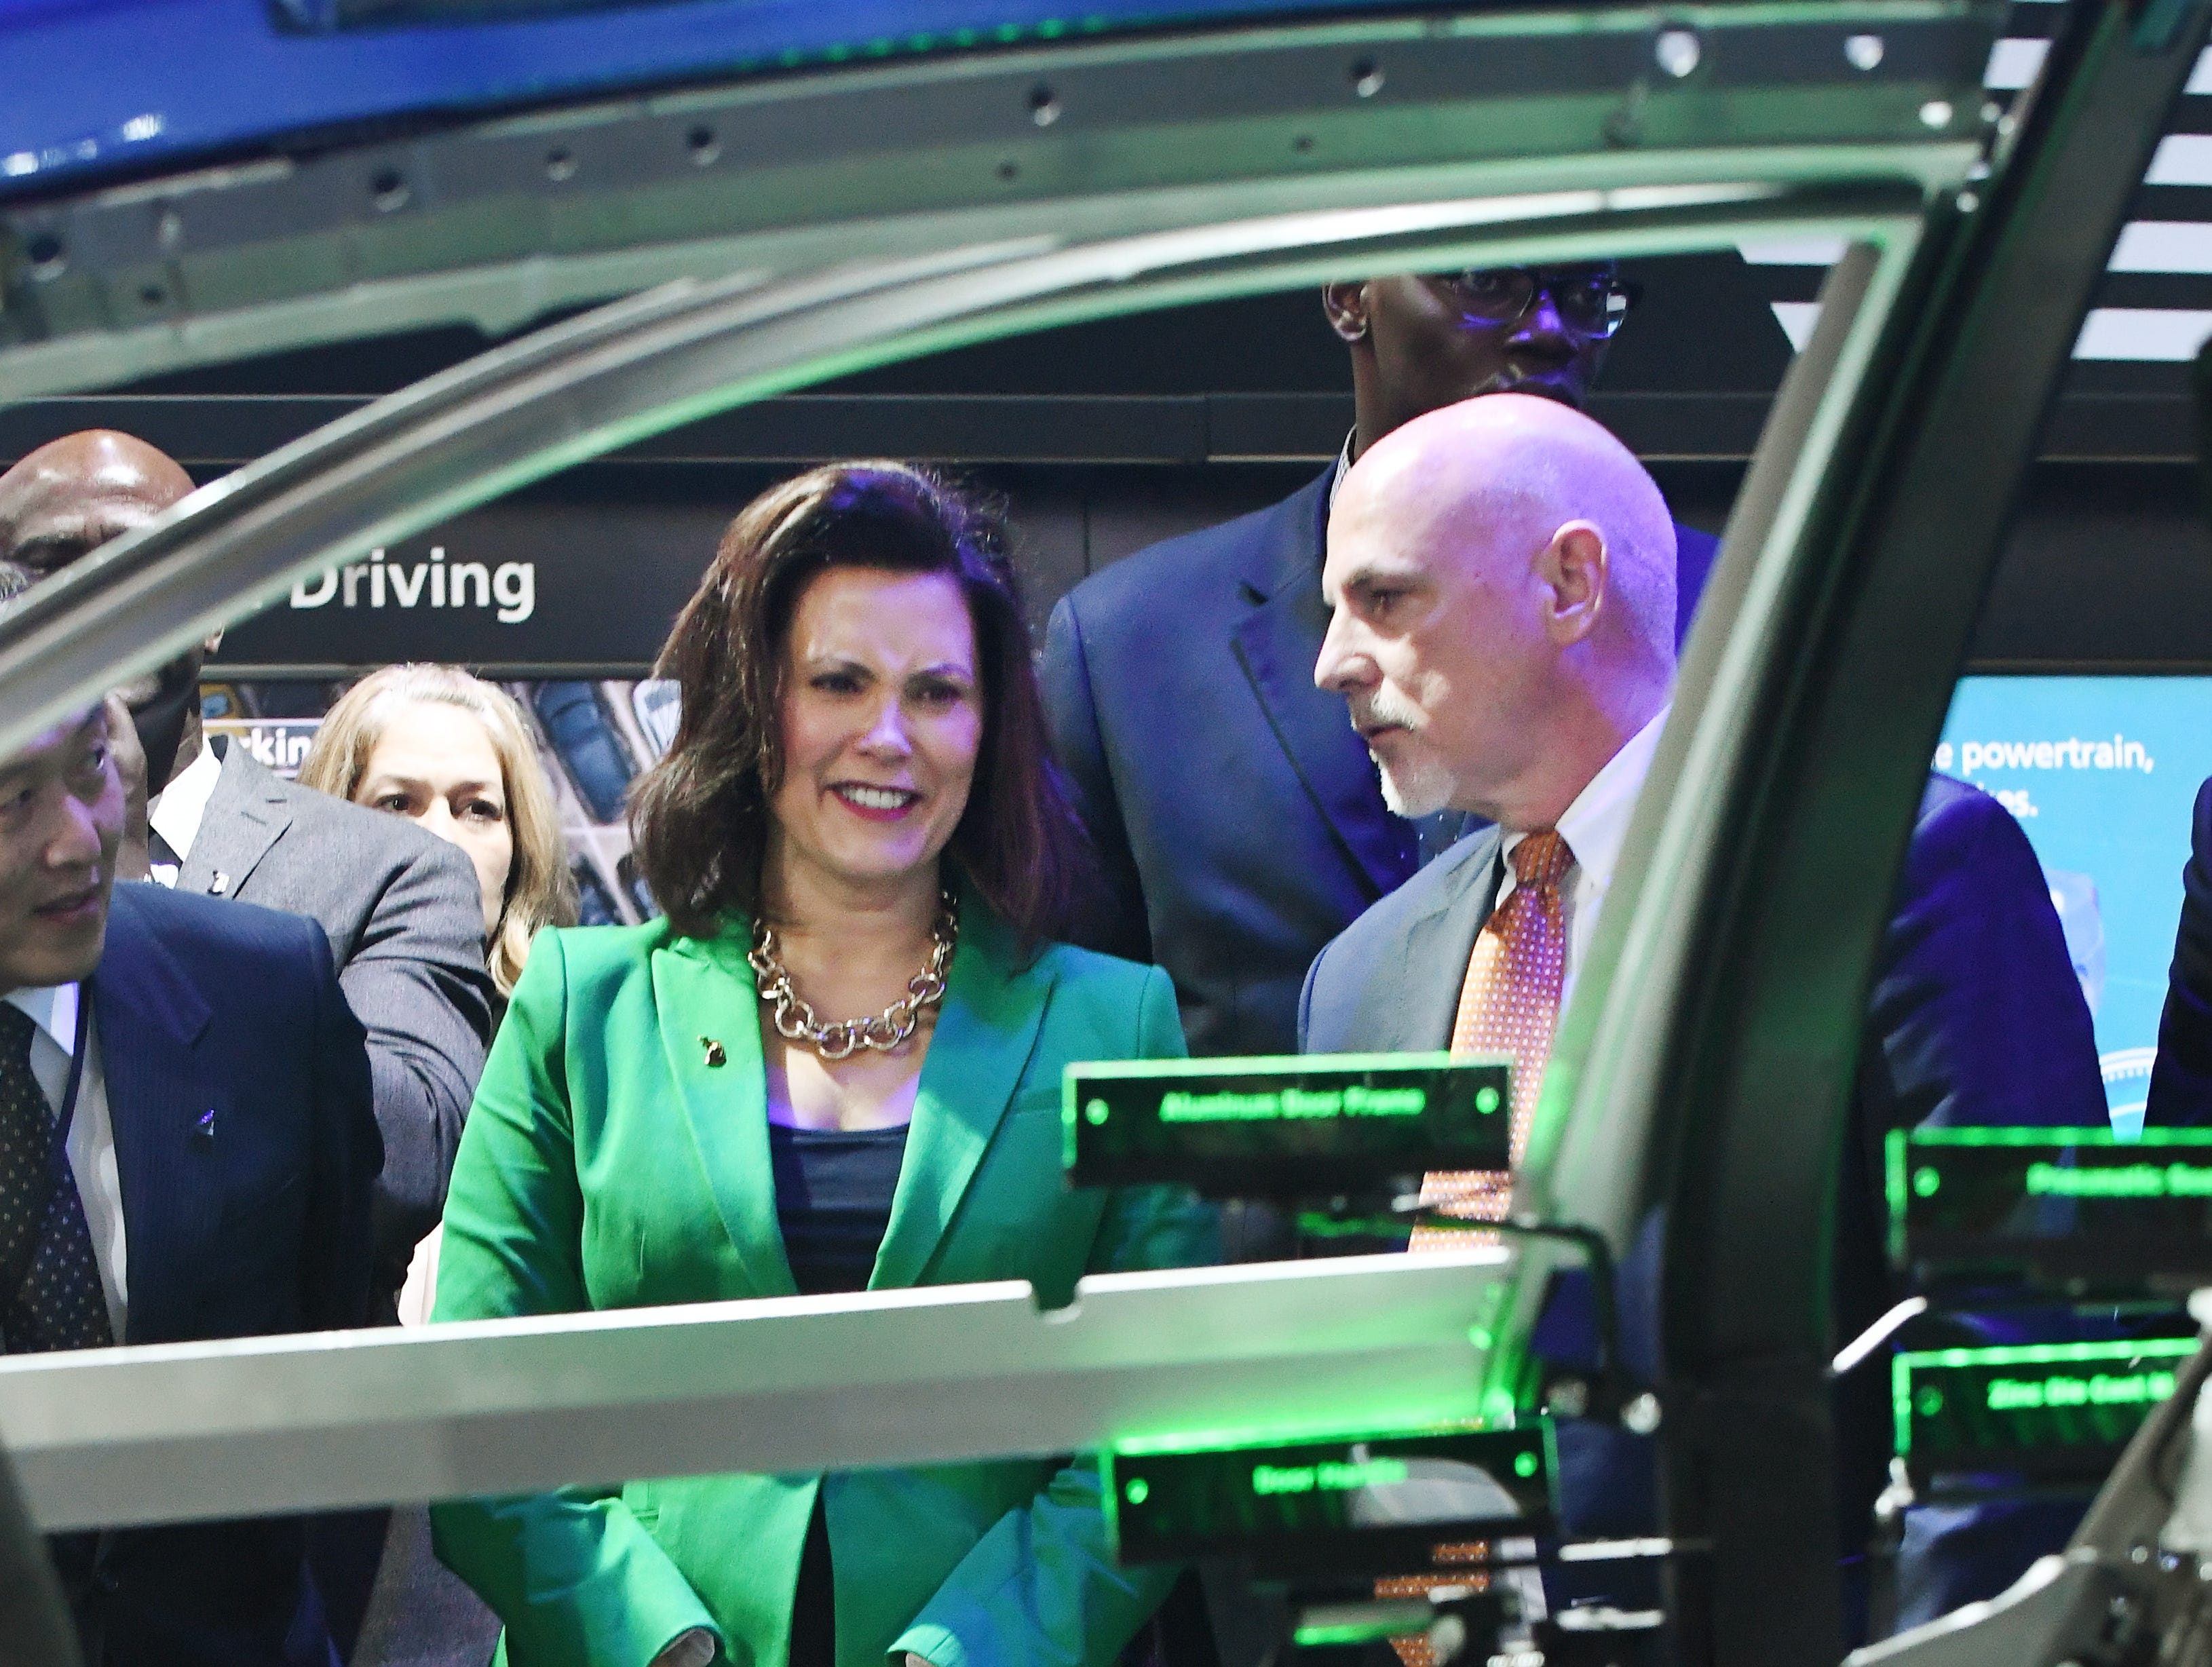 Michigan Governor Gretchen Whitmer and Aisin World Corporation President Scott Turpin during a tour of their display at North American International Auto Show.